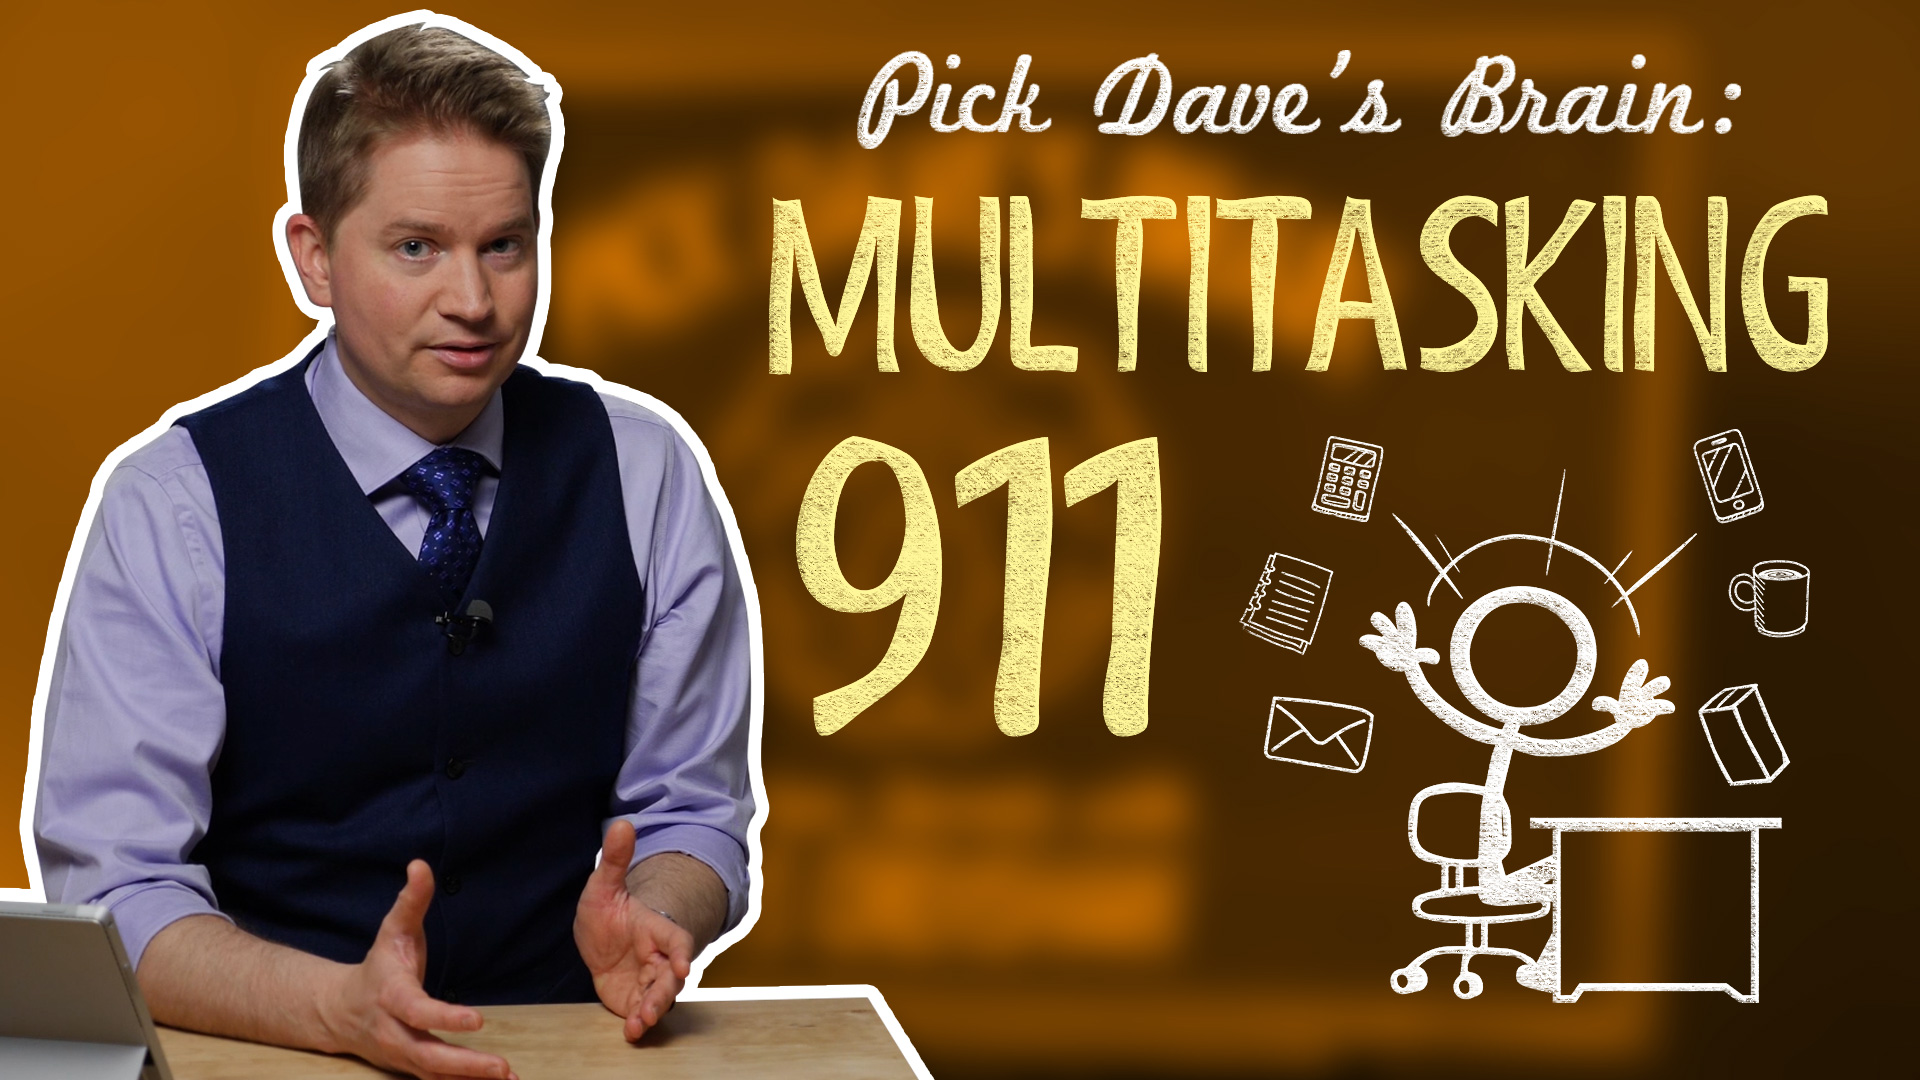 What to do when 'multitasking' is unavoidable – Pick Dave's Brain